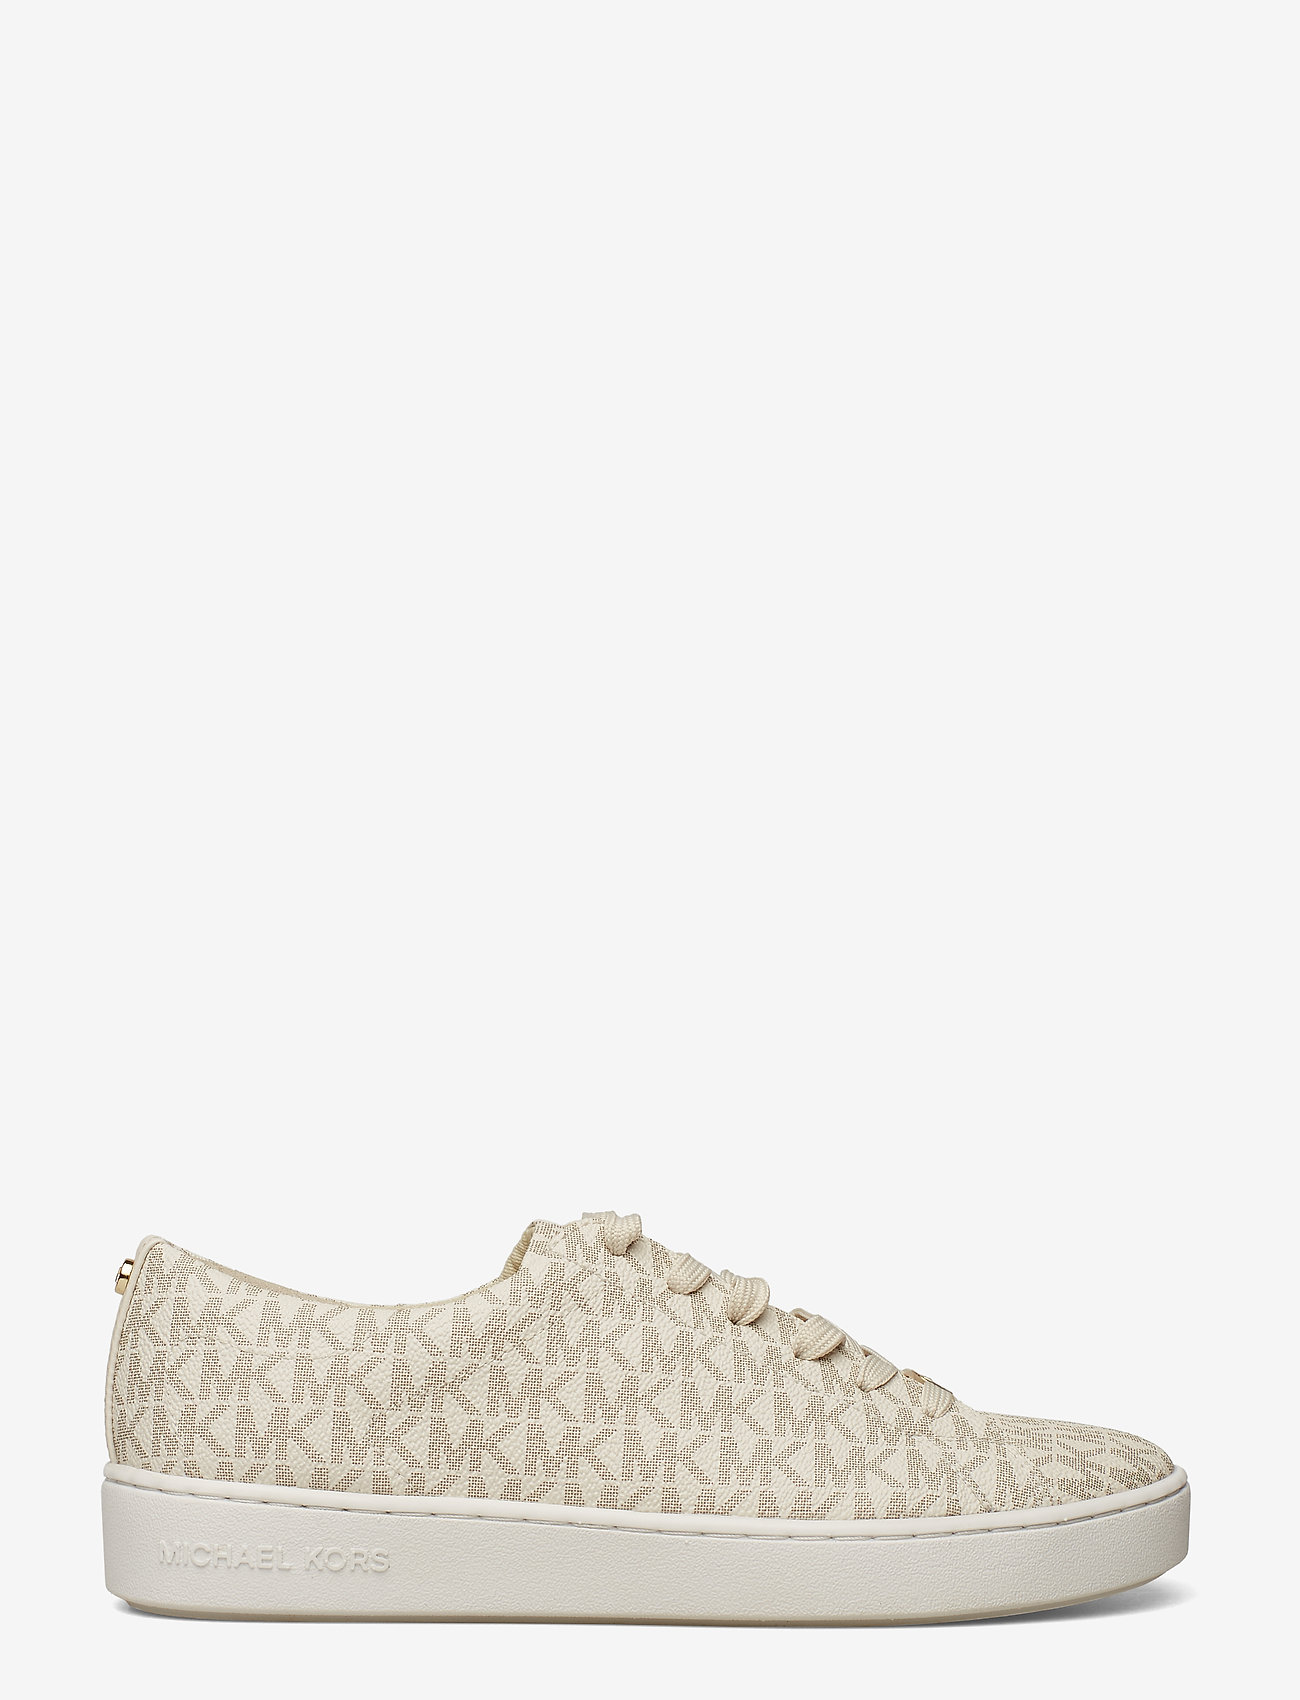 Michael Kors - KEATON LACE UP - lage sneakers - vanilla - 1